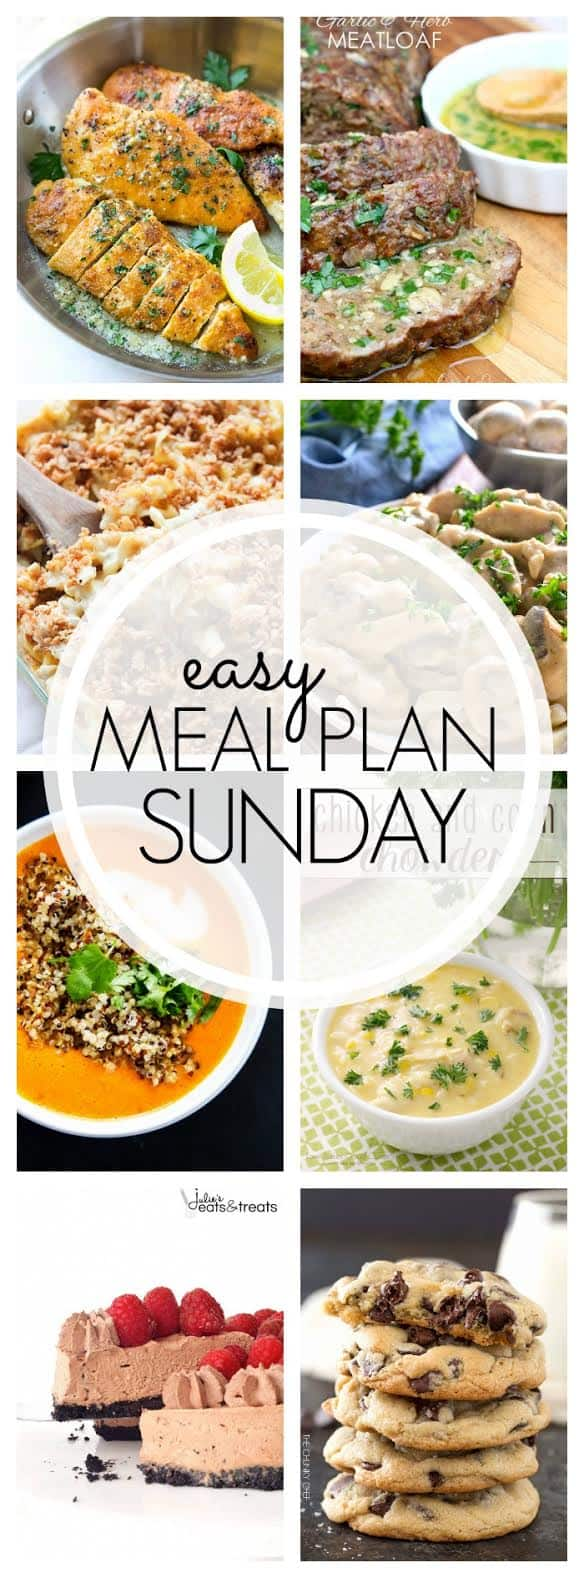 The easiest and BEST weekly meal plan! Everything you need for a full week's worth of meals...all in one place!